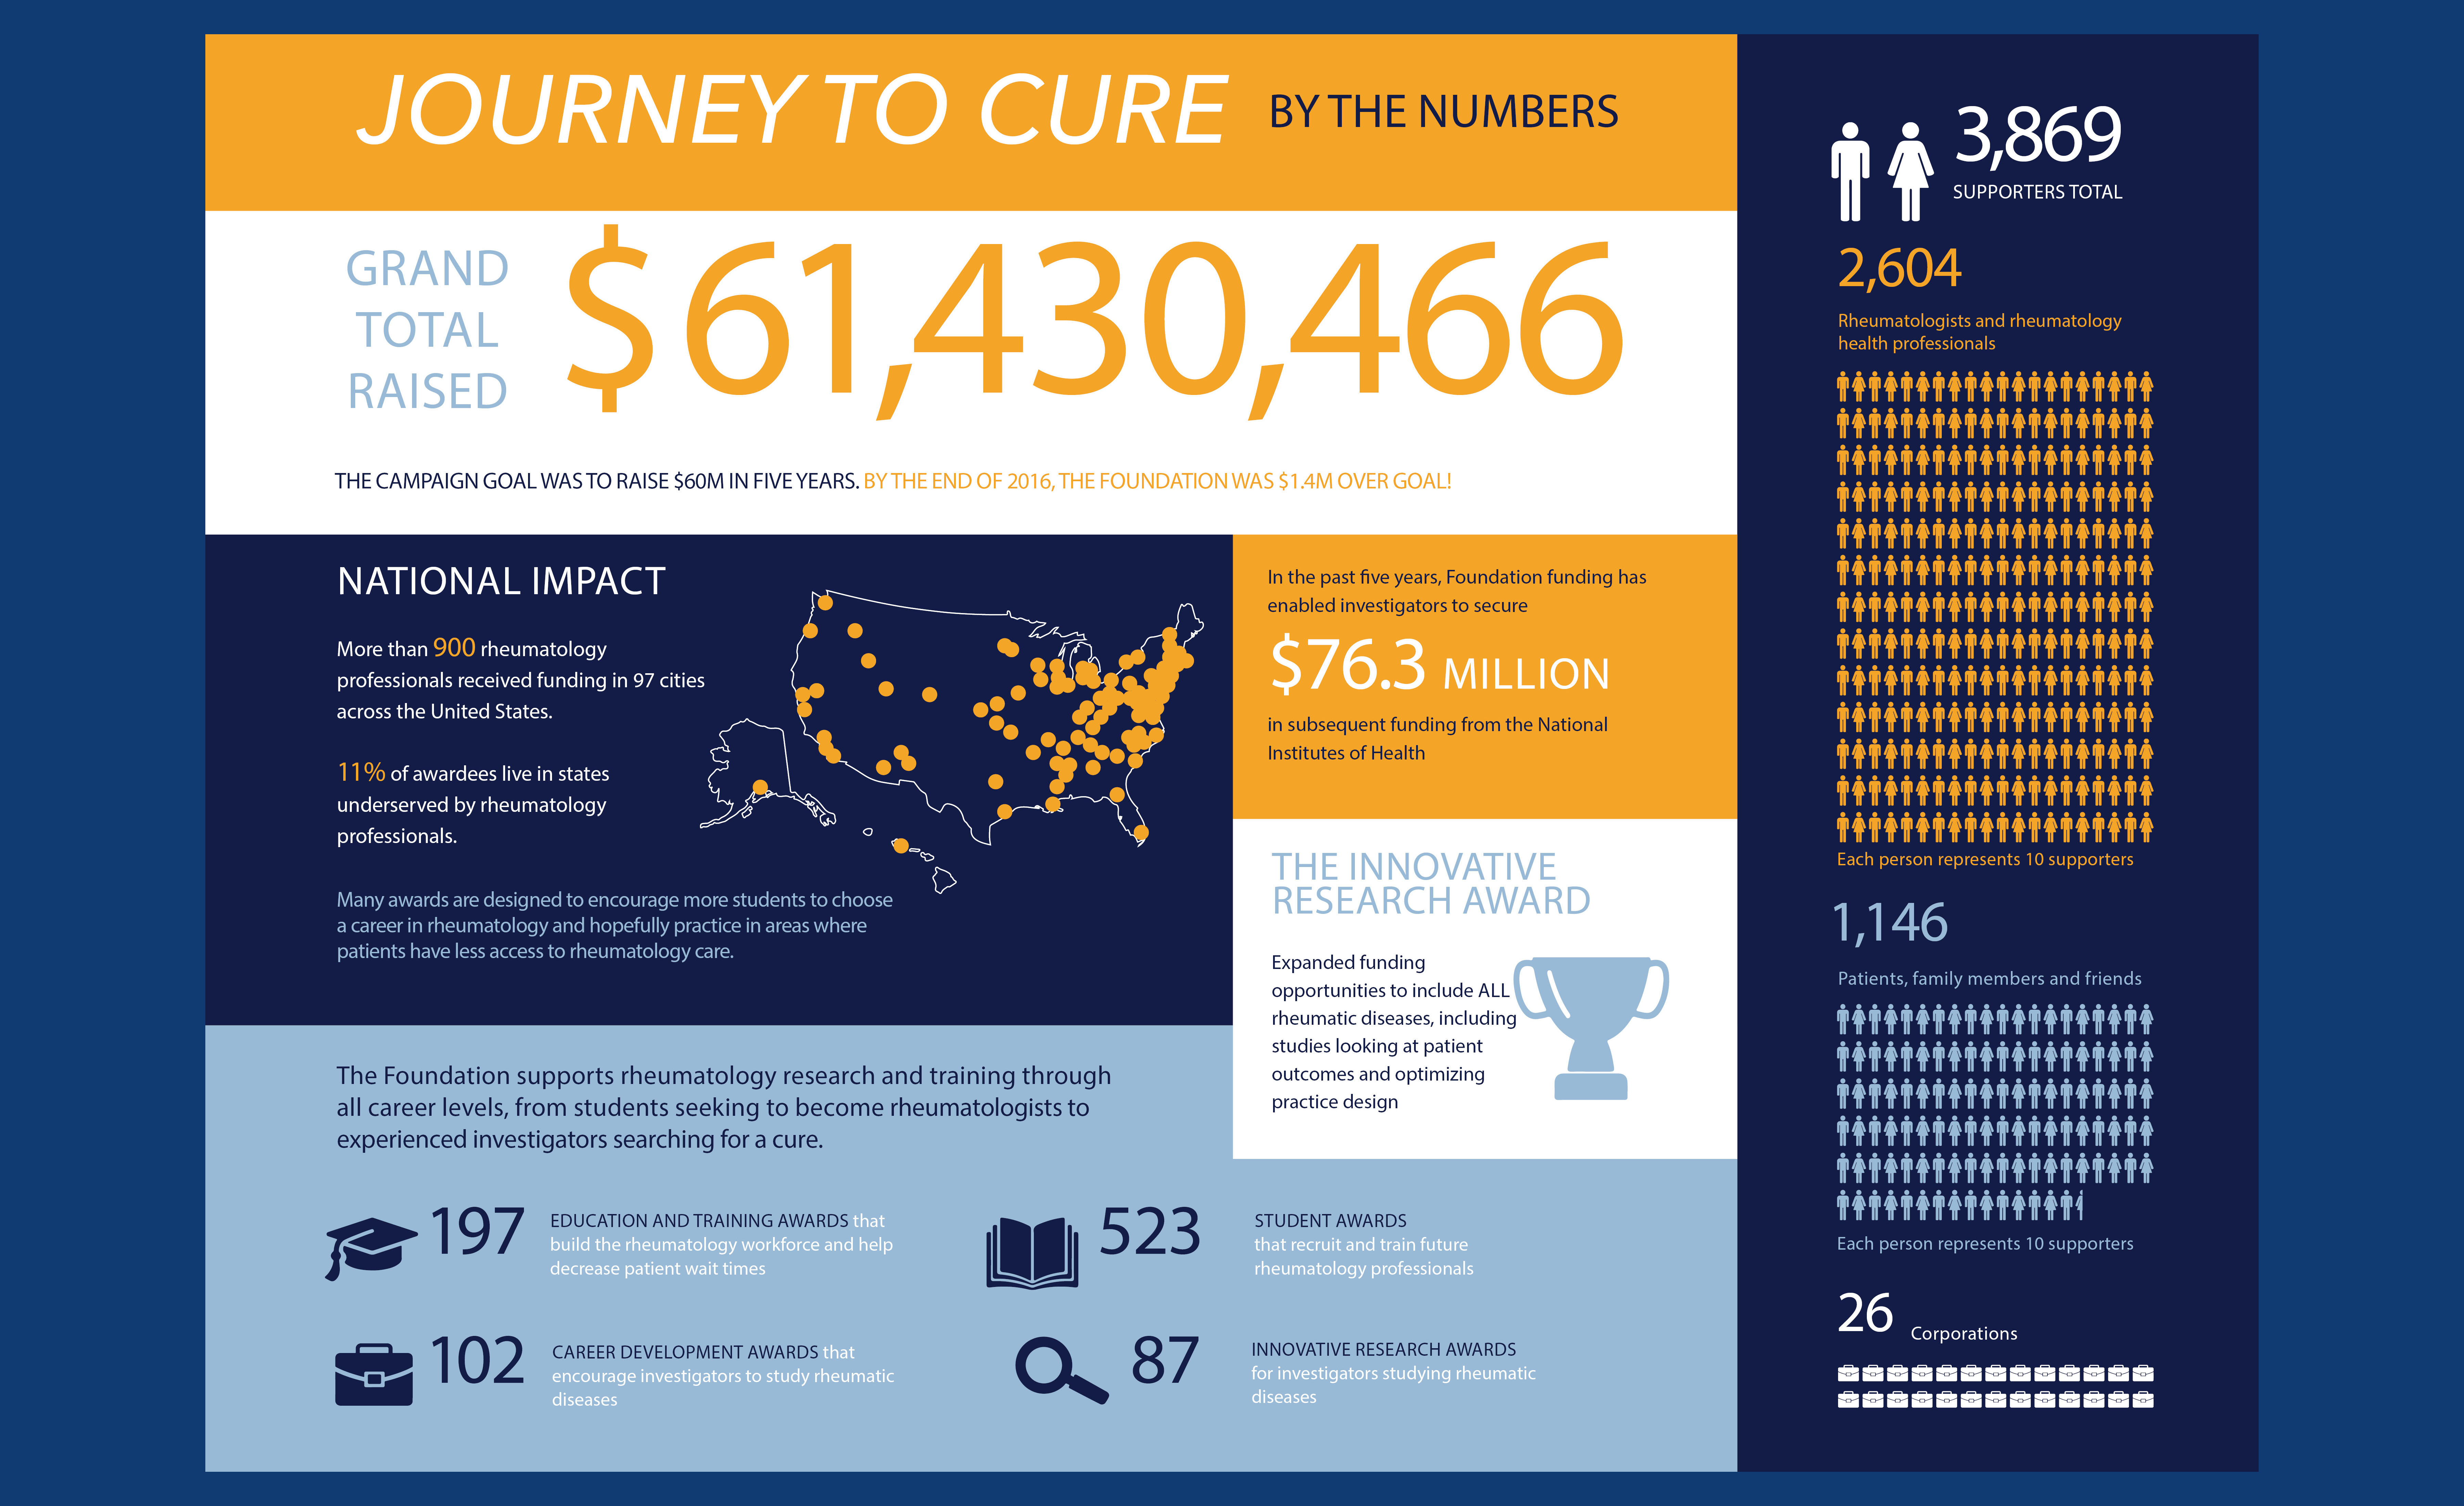 An infographic that shows where and how Journey to Cure donations are being used to improve care.